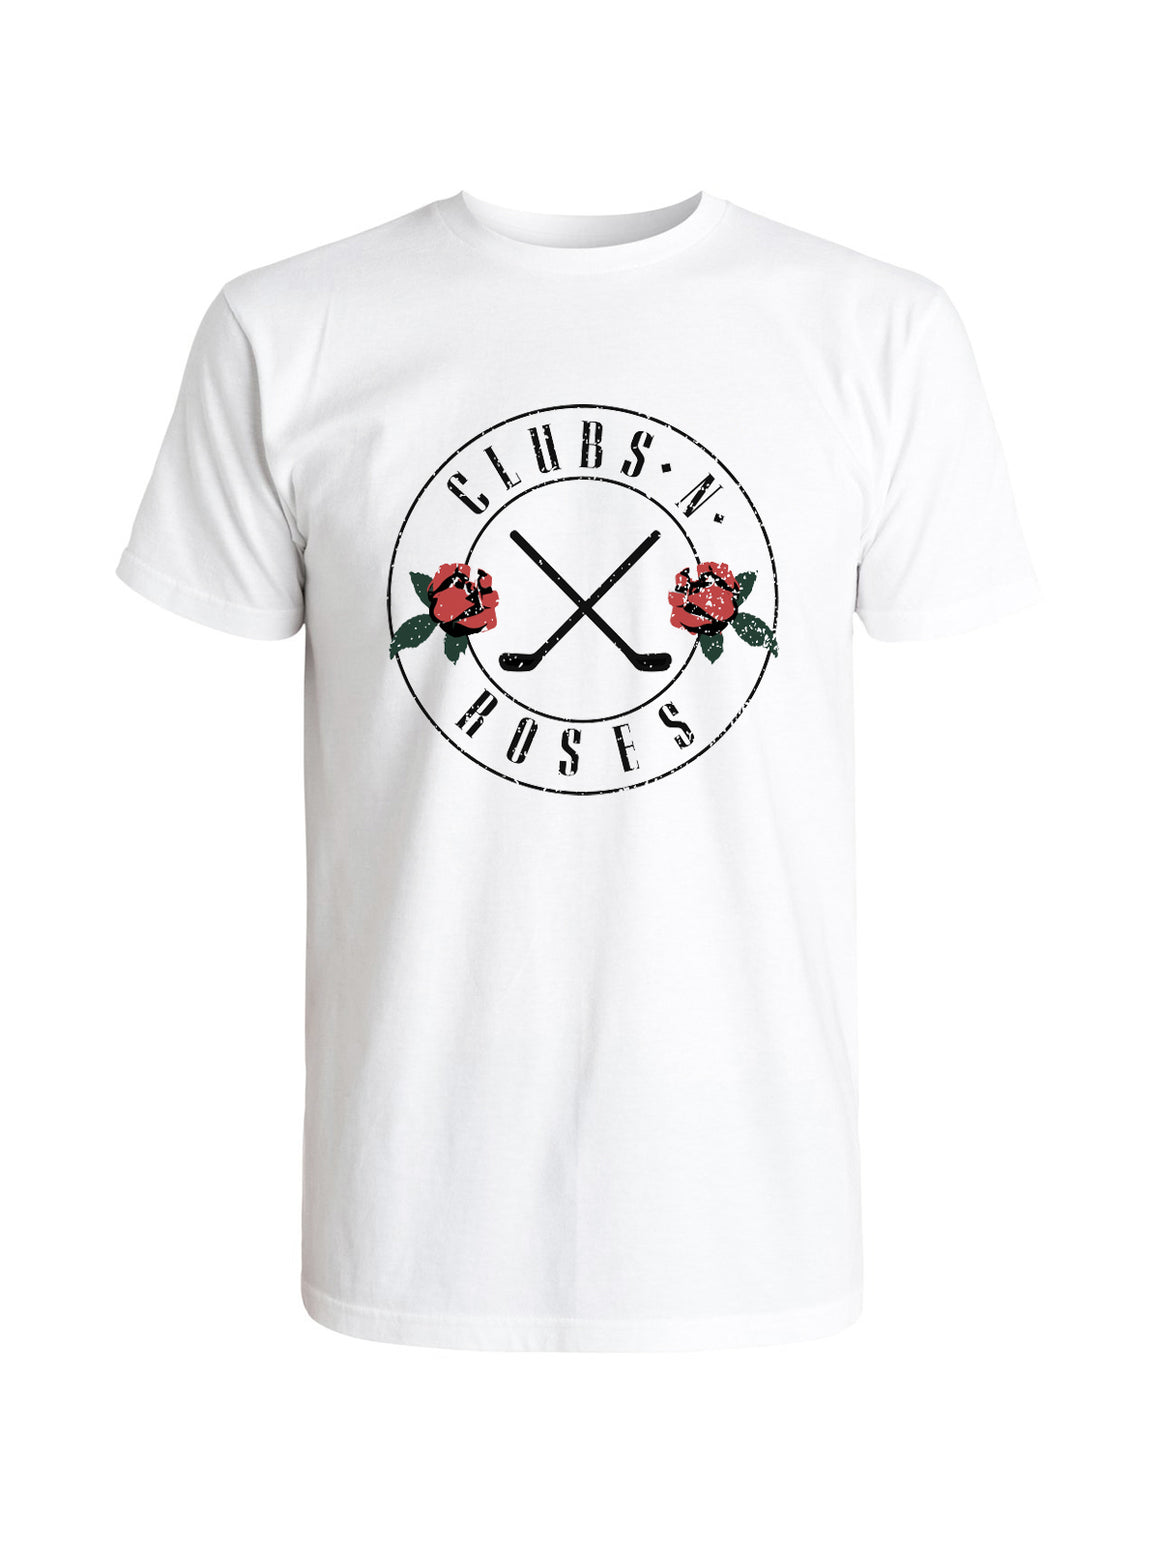 Clubs 'N Roses Distressed Tee Shirt - White